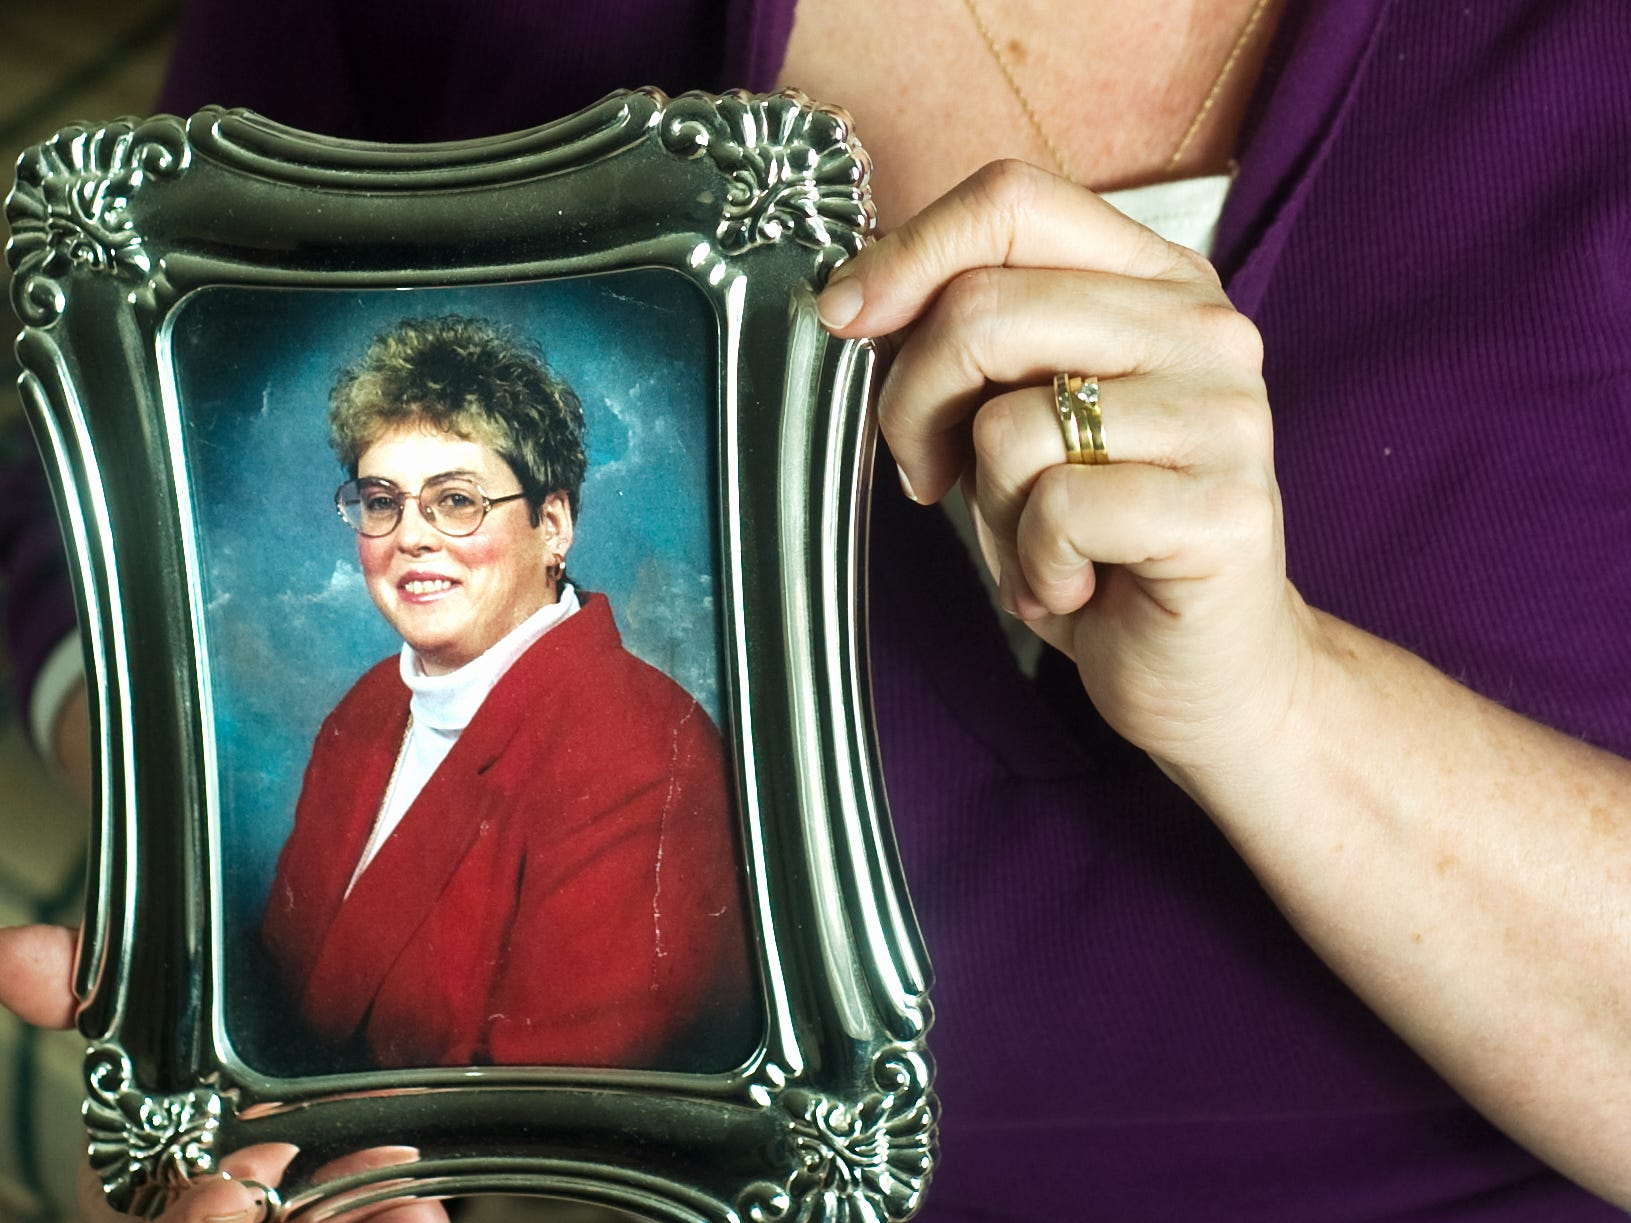 Bonnie Leister, the sister of Diane Wolf, was the person who discovered Diane's 1994 Pontiac Grand Prix in the Weis Market parking lot, which was located on Baltimore Street in Penn Township.